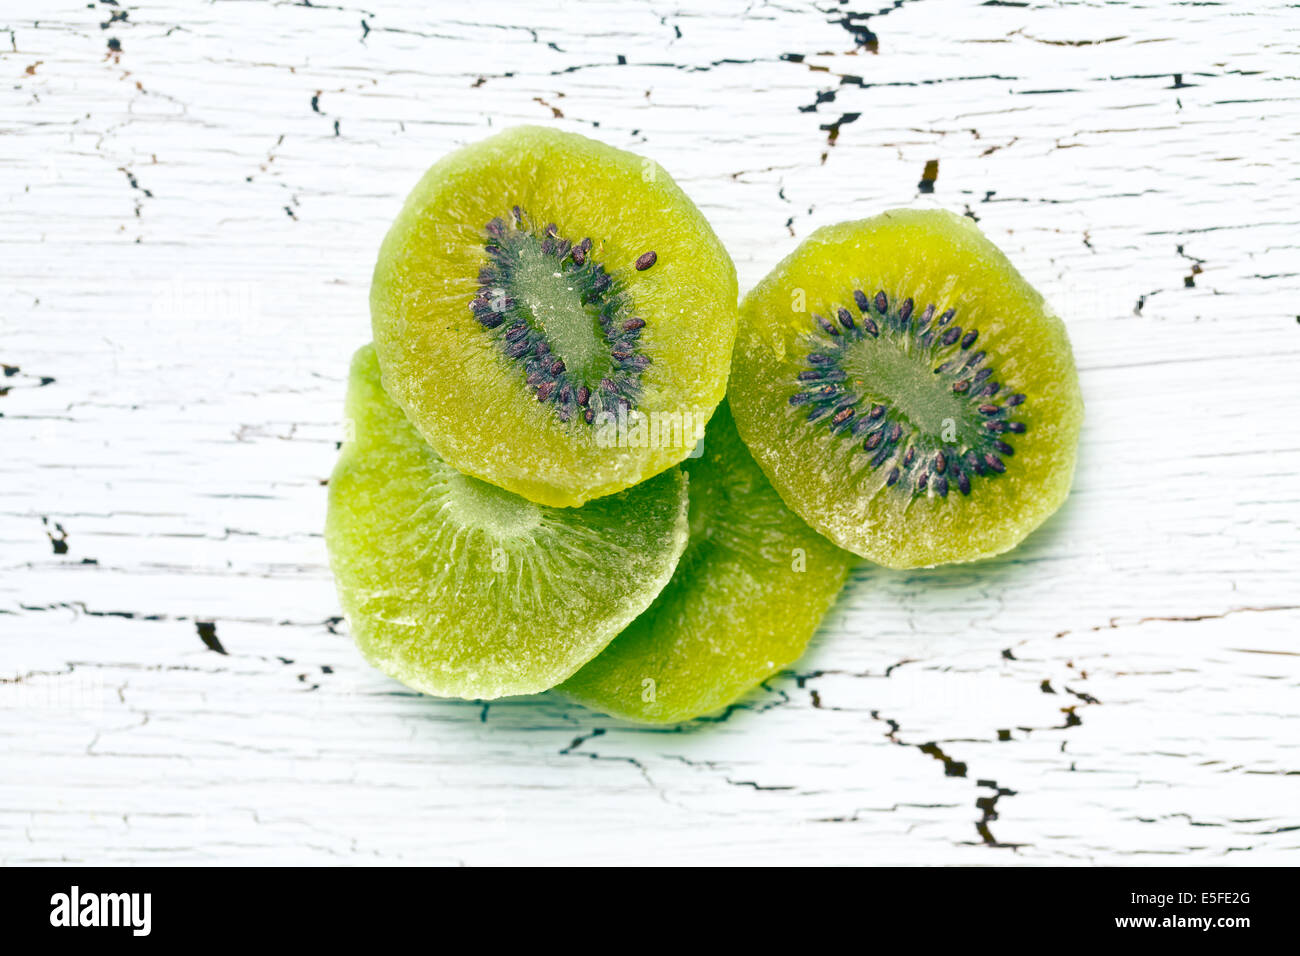 candied kiwi fruit on wooden table - Stock Image